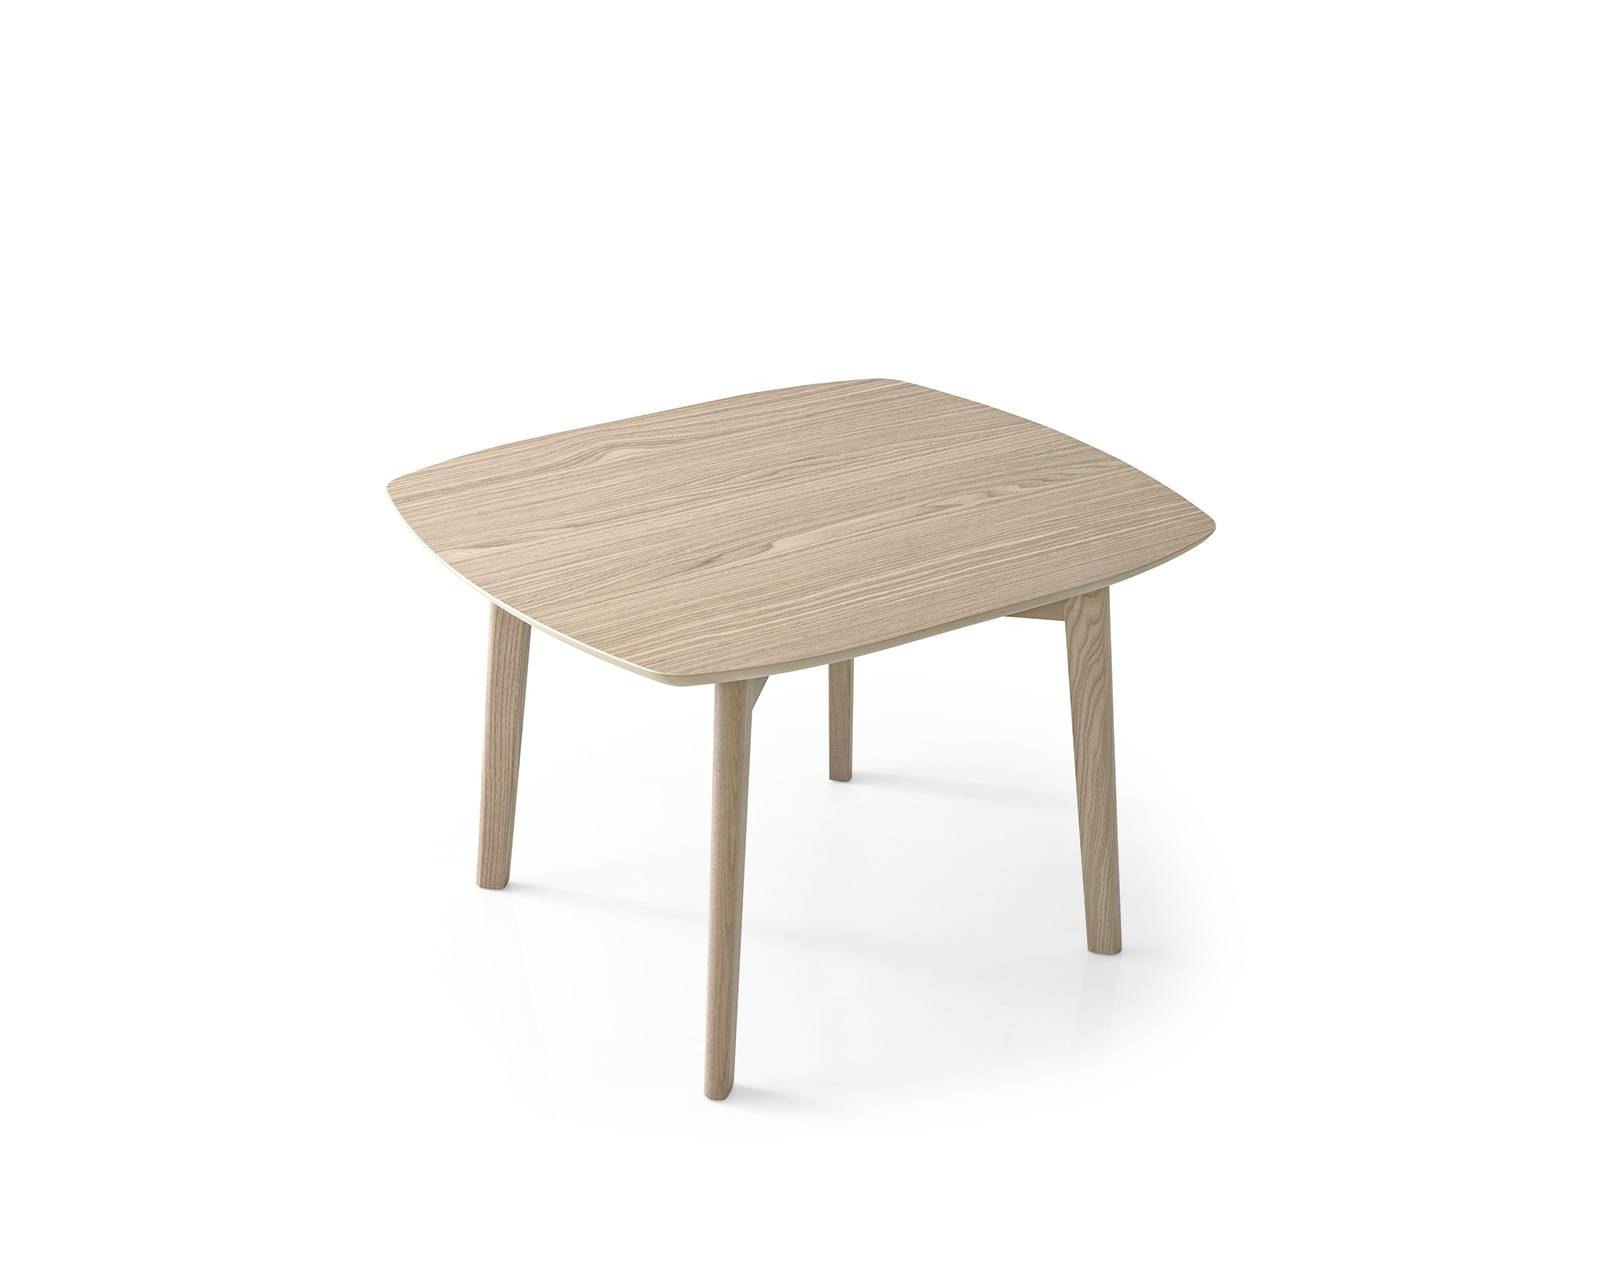 Match Small Wooden Coffee Table – Calligaris Cs/5084 C Pertaining To C Coffee Tables (View 18 of 30)